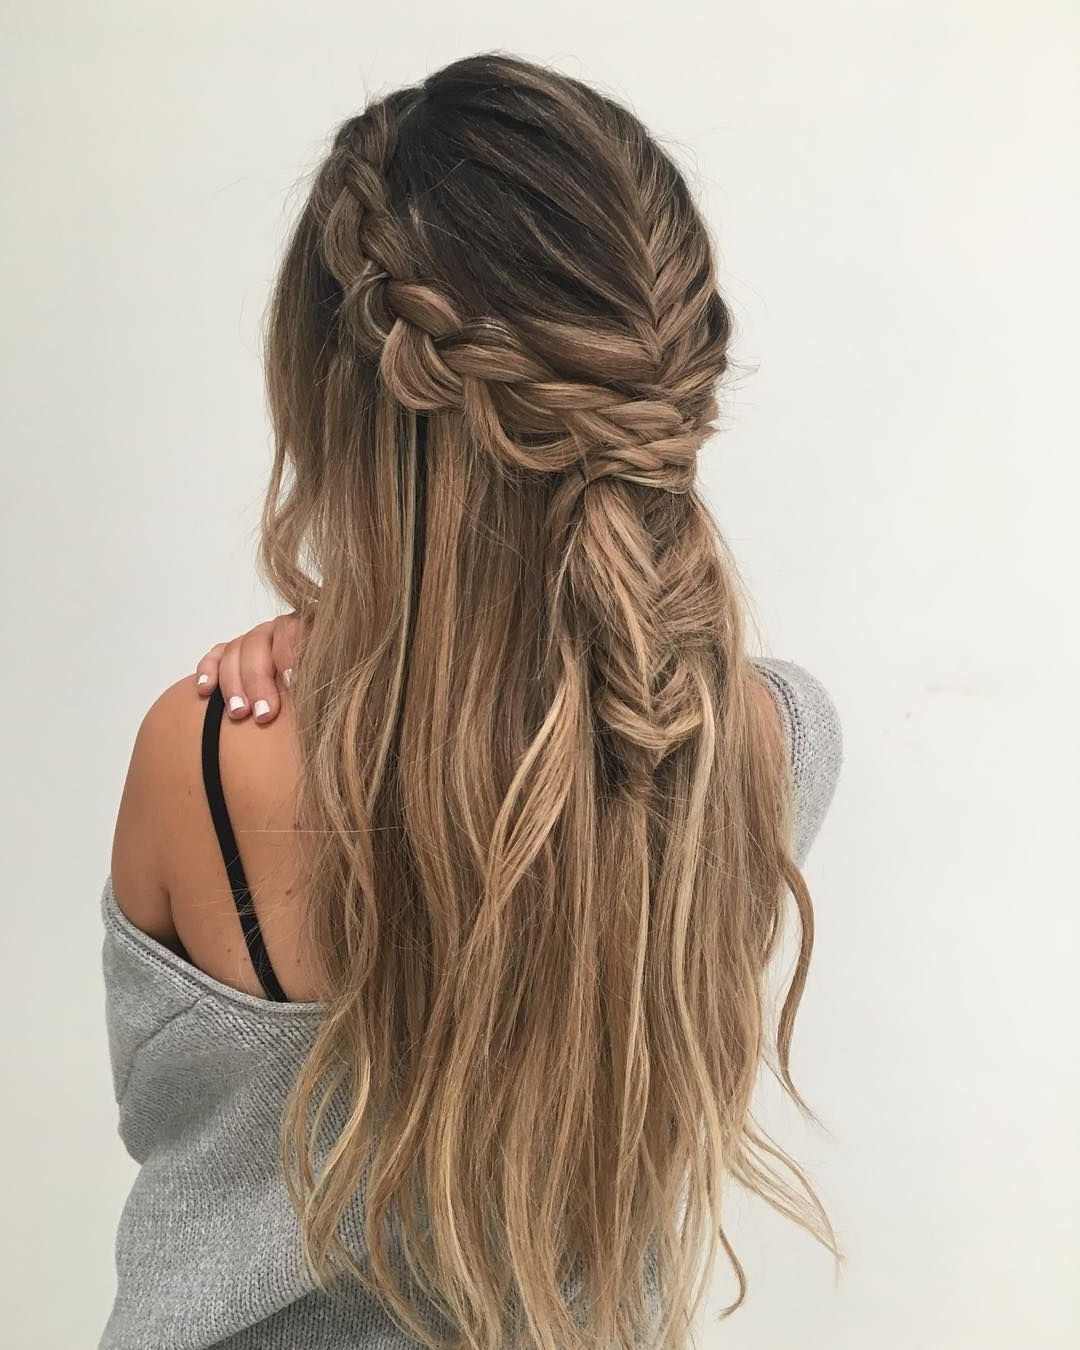 Preferred Fishtail Crown Braid Hairstyles Pertaining To 39 Trendy + Messy & Chic Braided Hairstyles (View 17 of 20)